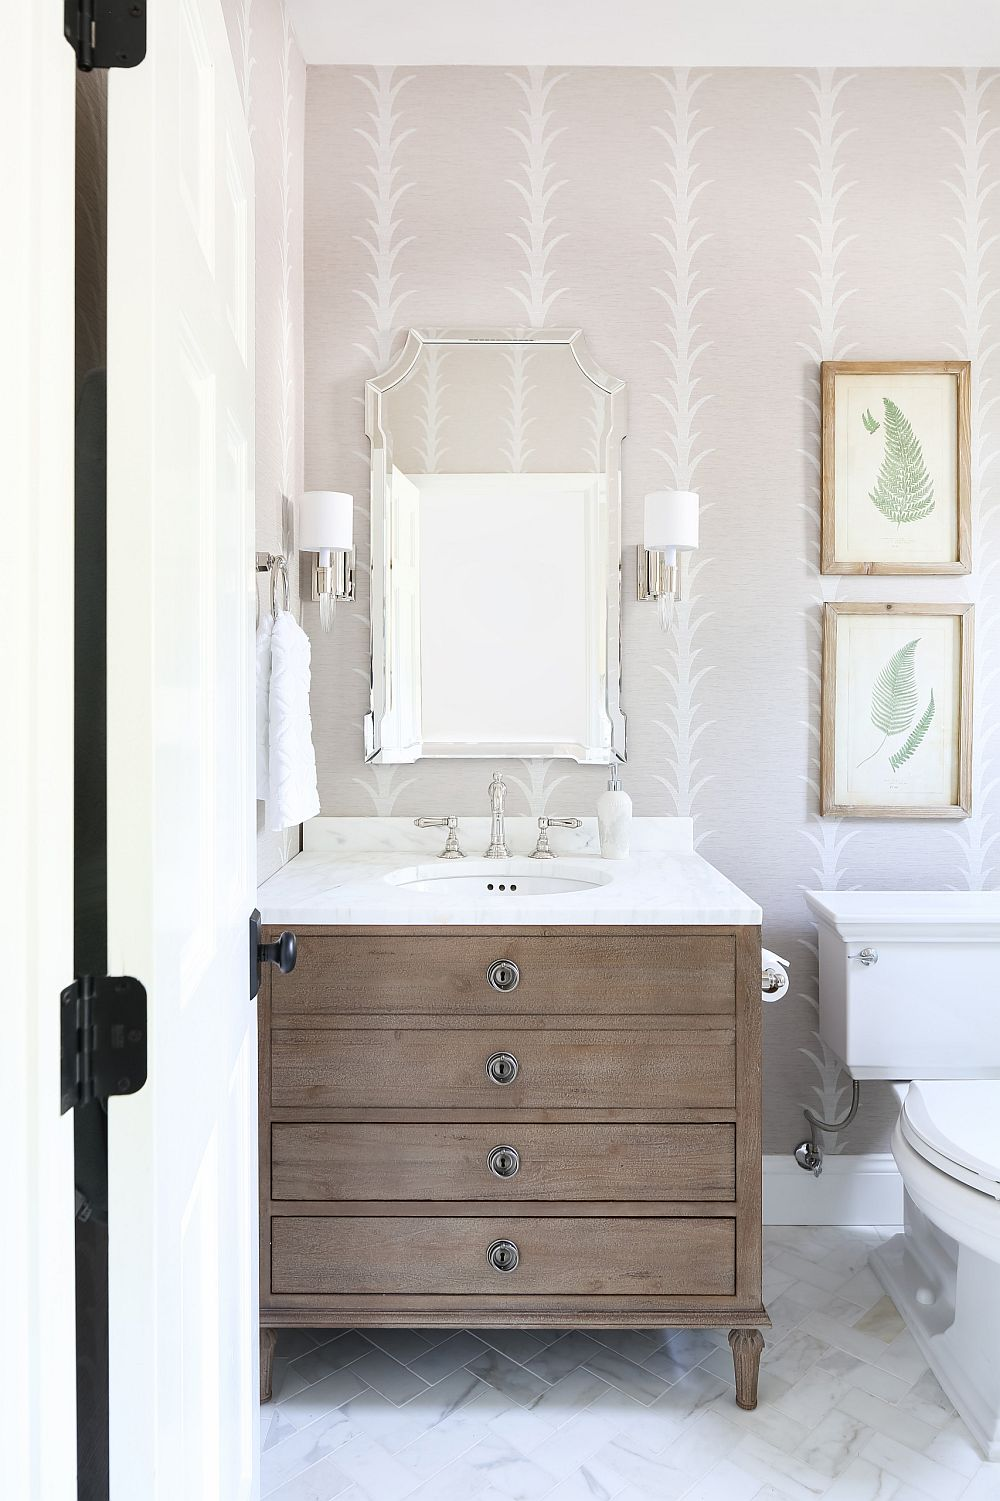 Decorating Your Bathroom Walls 15 Wall Art Ideas That Wow My Property Life